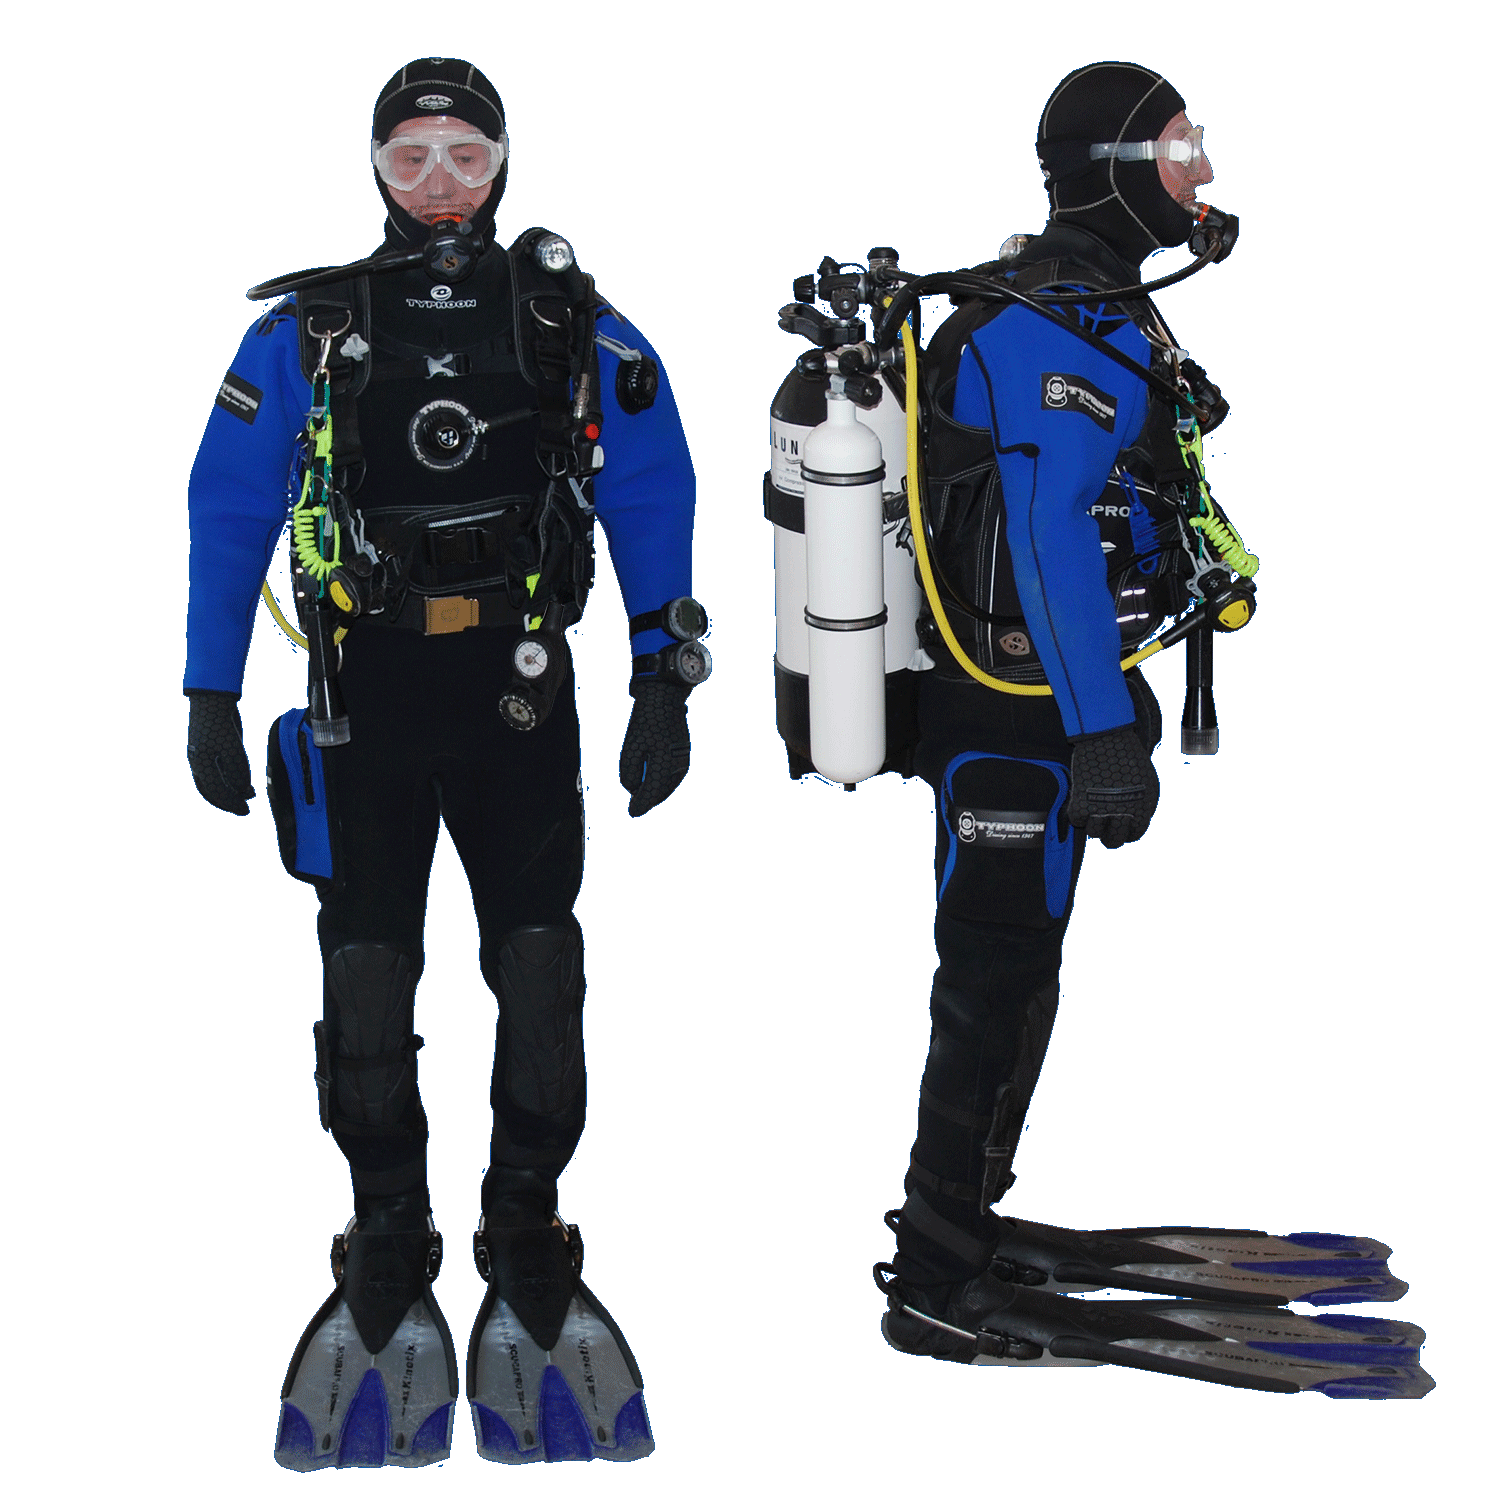 Scuba Diving Equipment - C-Divers.com